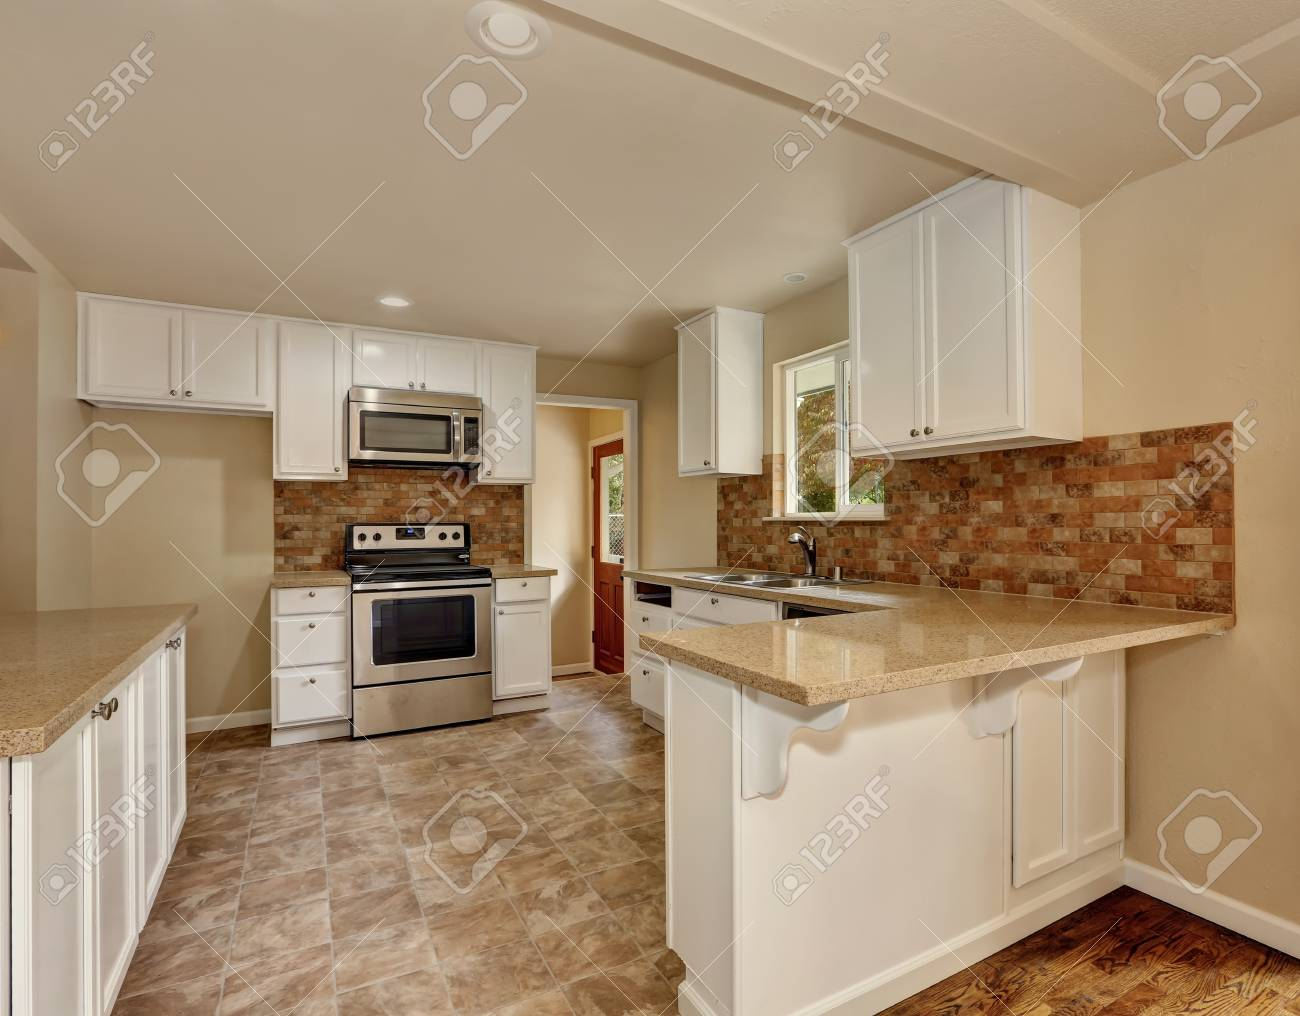 - American Classic Style Kitchen Room Interior With White Cabinets